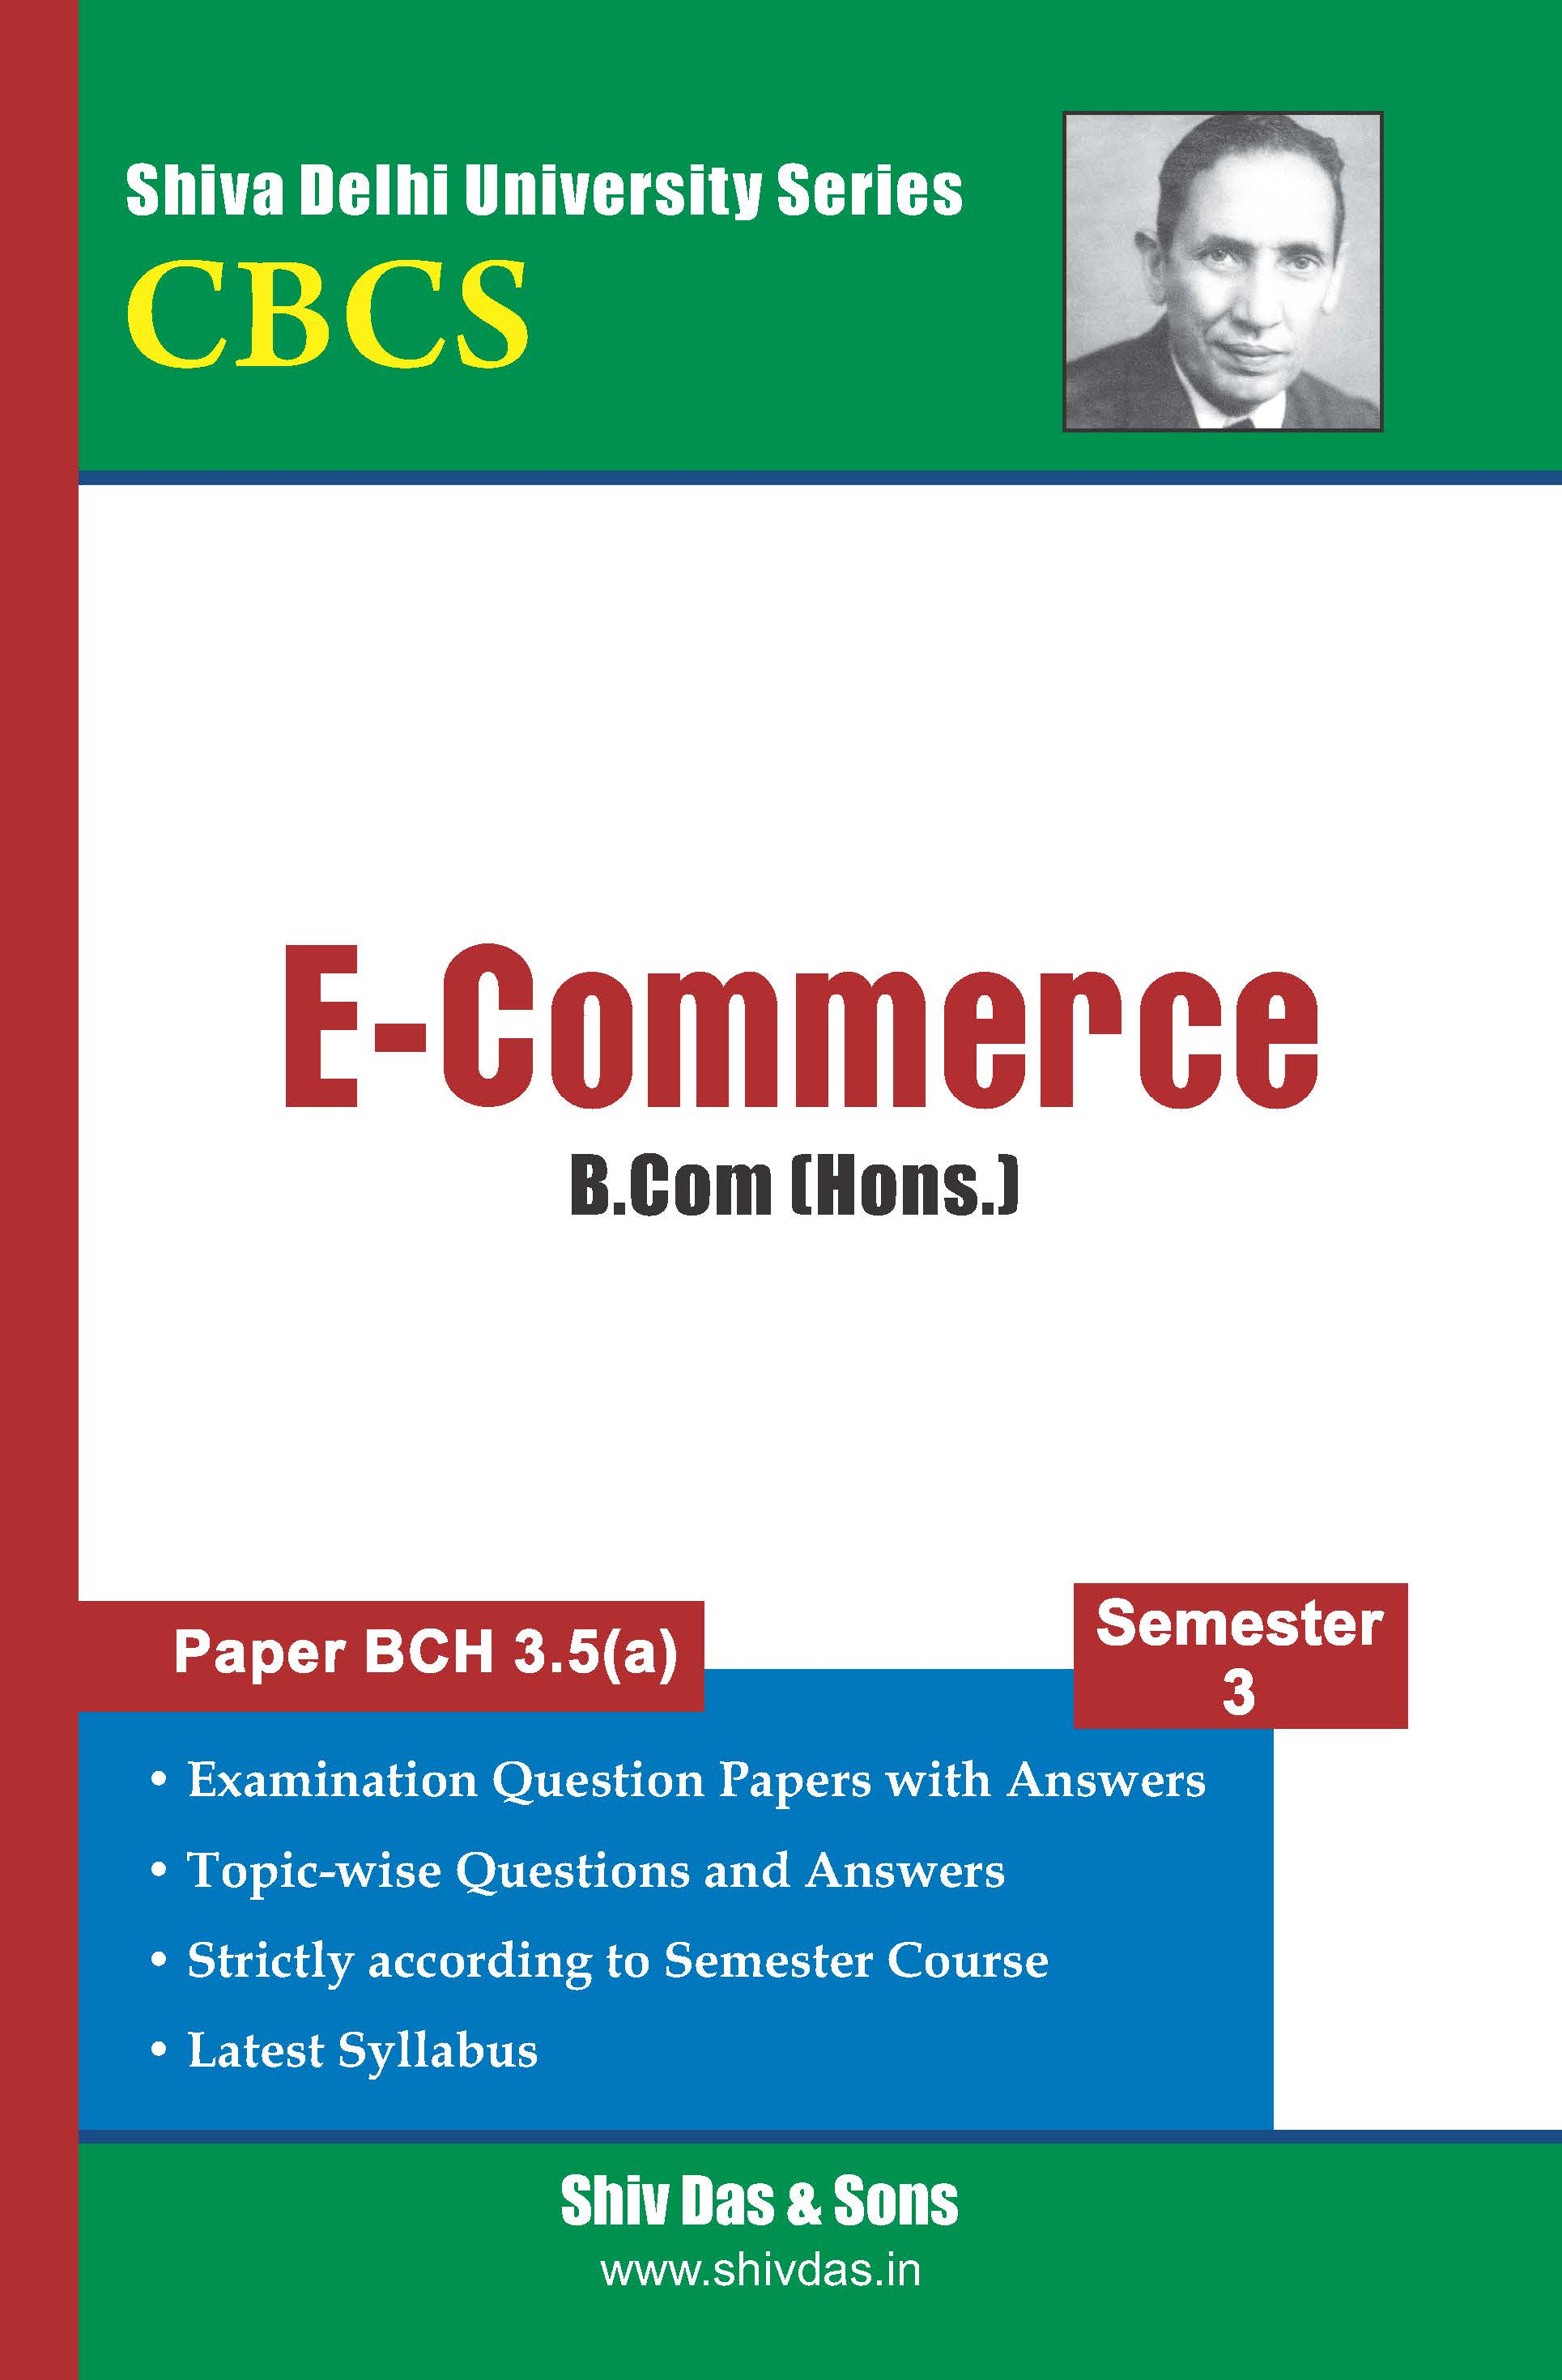 B.Com [Hons.] Semester-3 E-Commerce